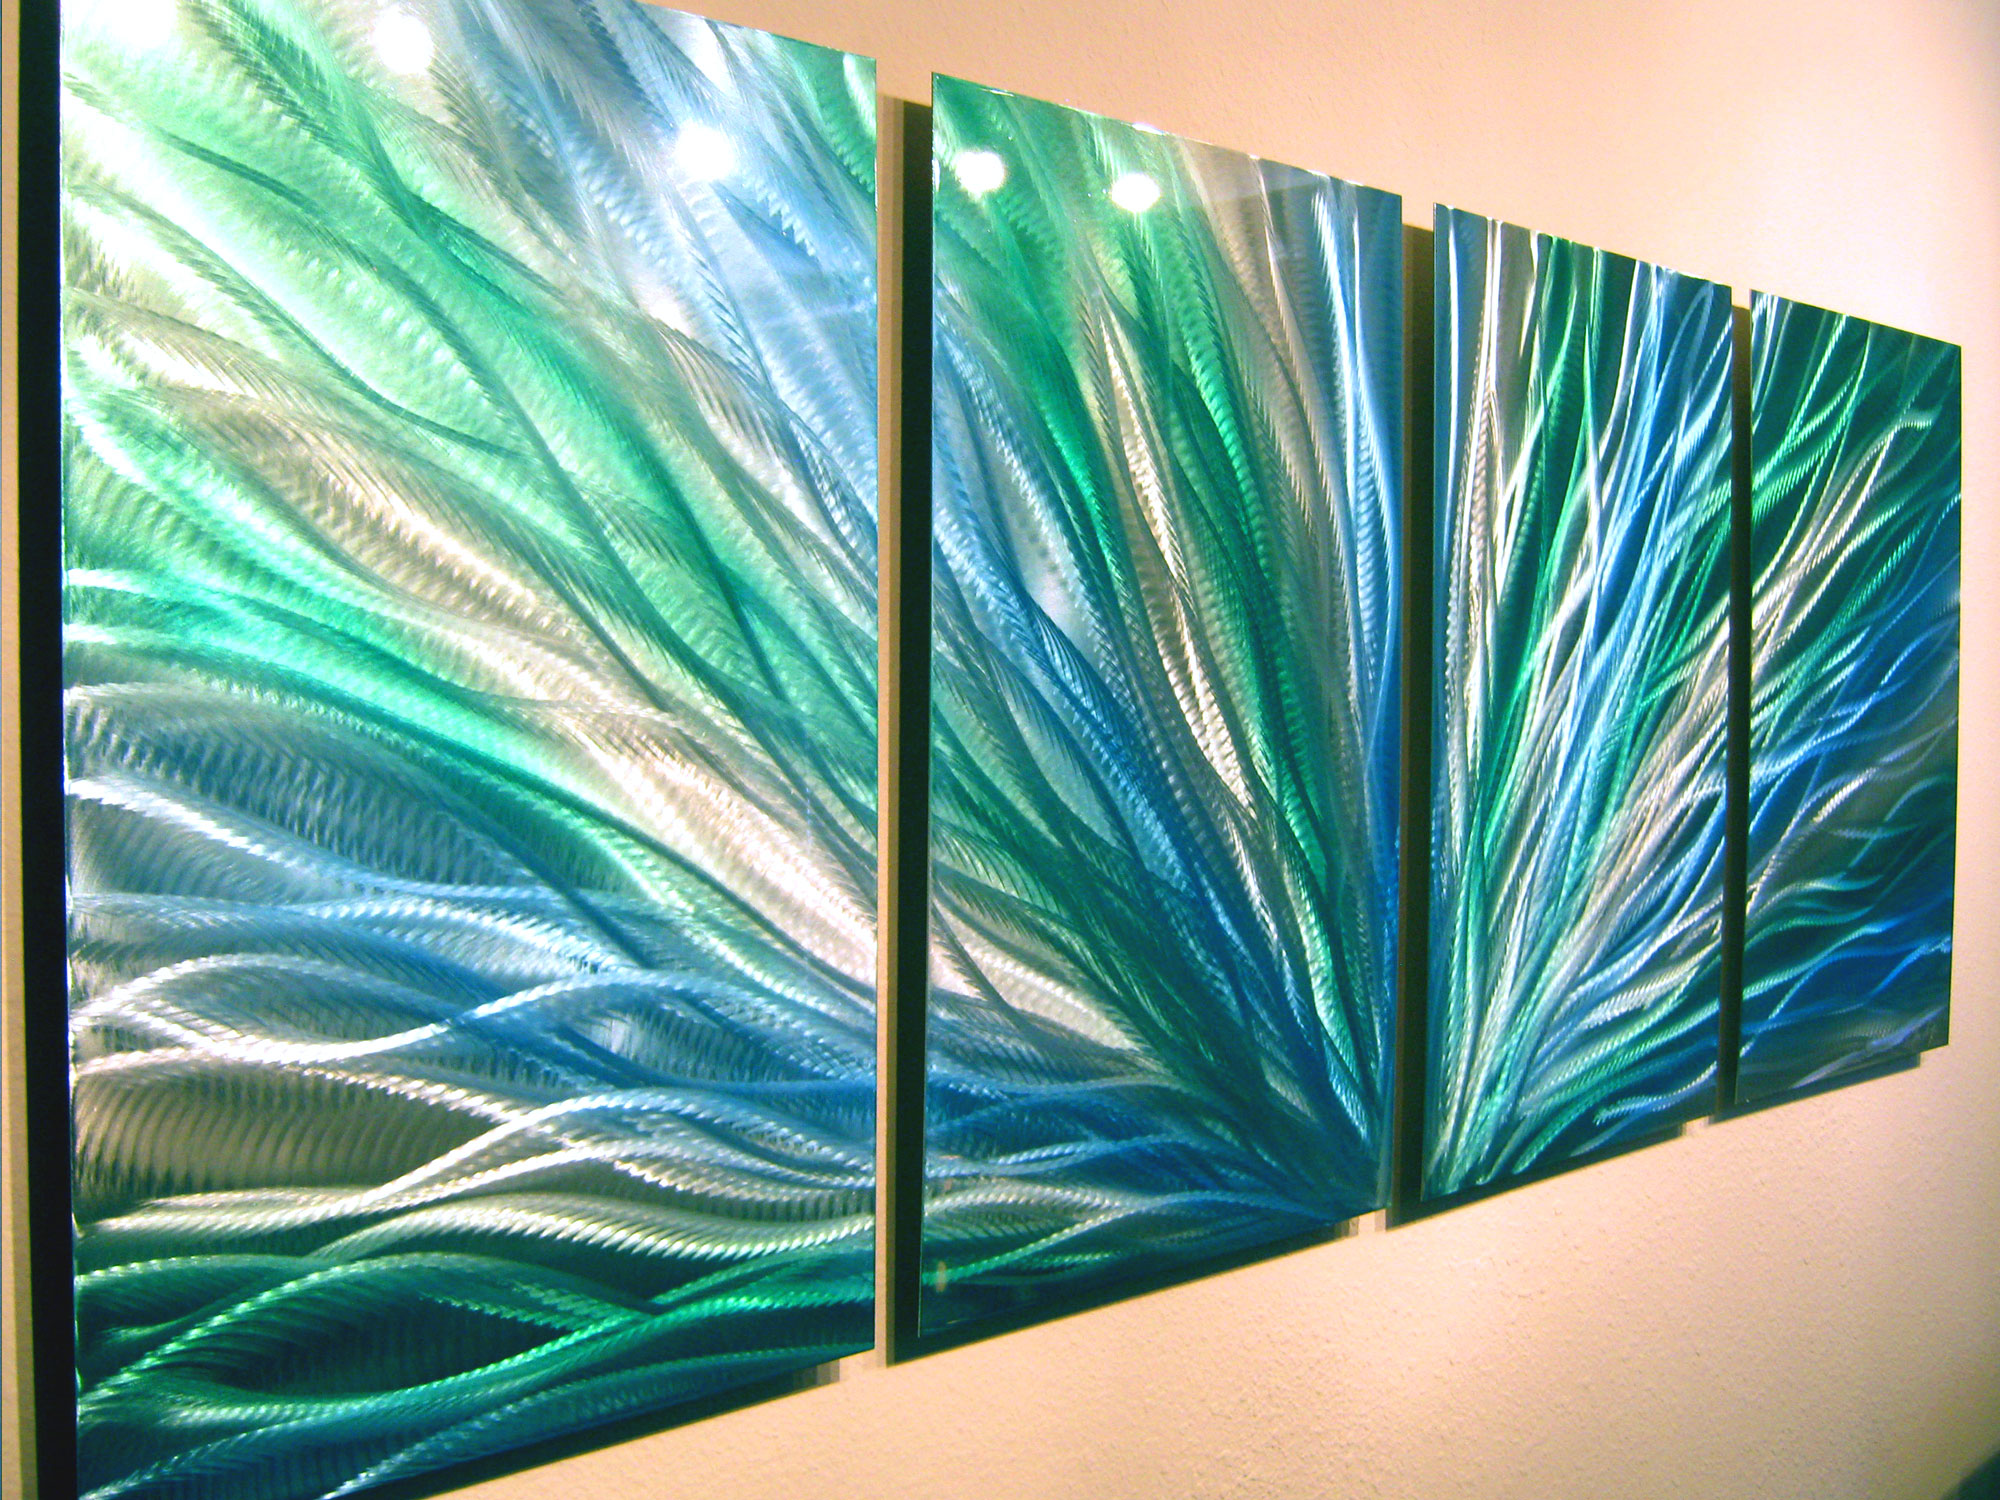 Blue Metal Wall Art Entrancing Radiance Blue Green Abstract Metal Wall Art Contemporary Modern Design Ideas